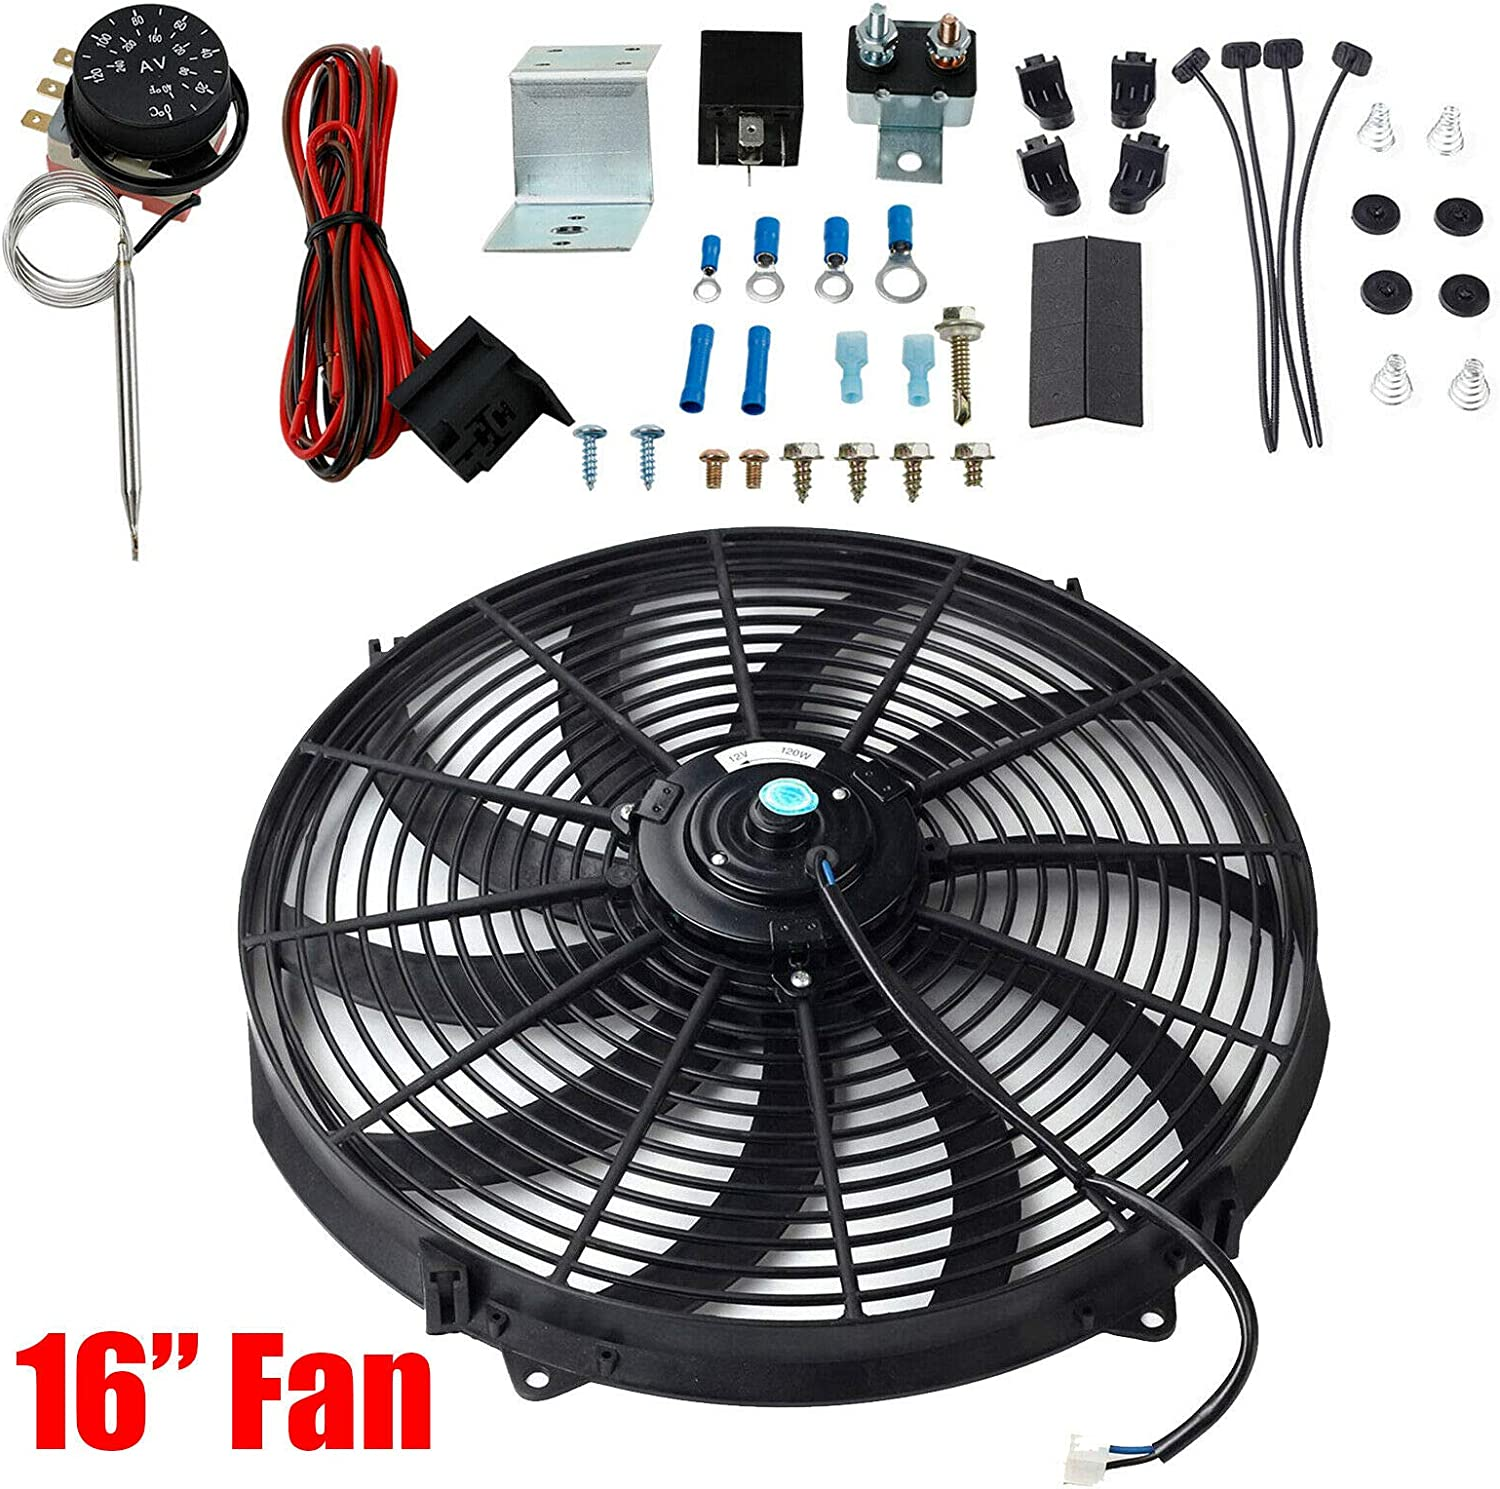 """BLACKHORSE-RACING 16"""" Slim Push Pull 12V Electric Radiator Cooling Fan with Adjustable Electric 12V Radiator Fan Thermostat Control Relay Wire Kit for Car Truck"""